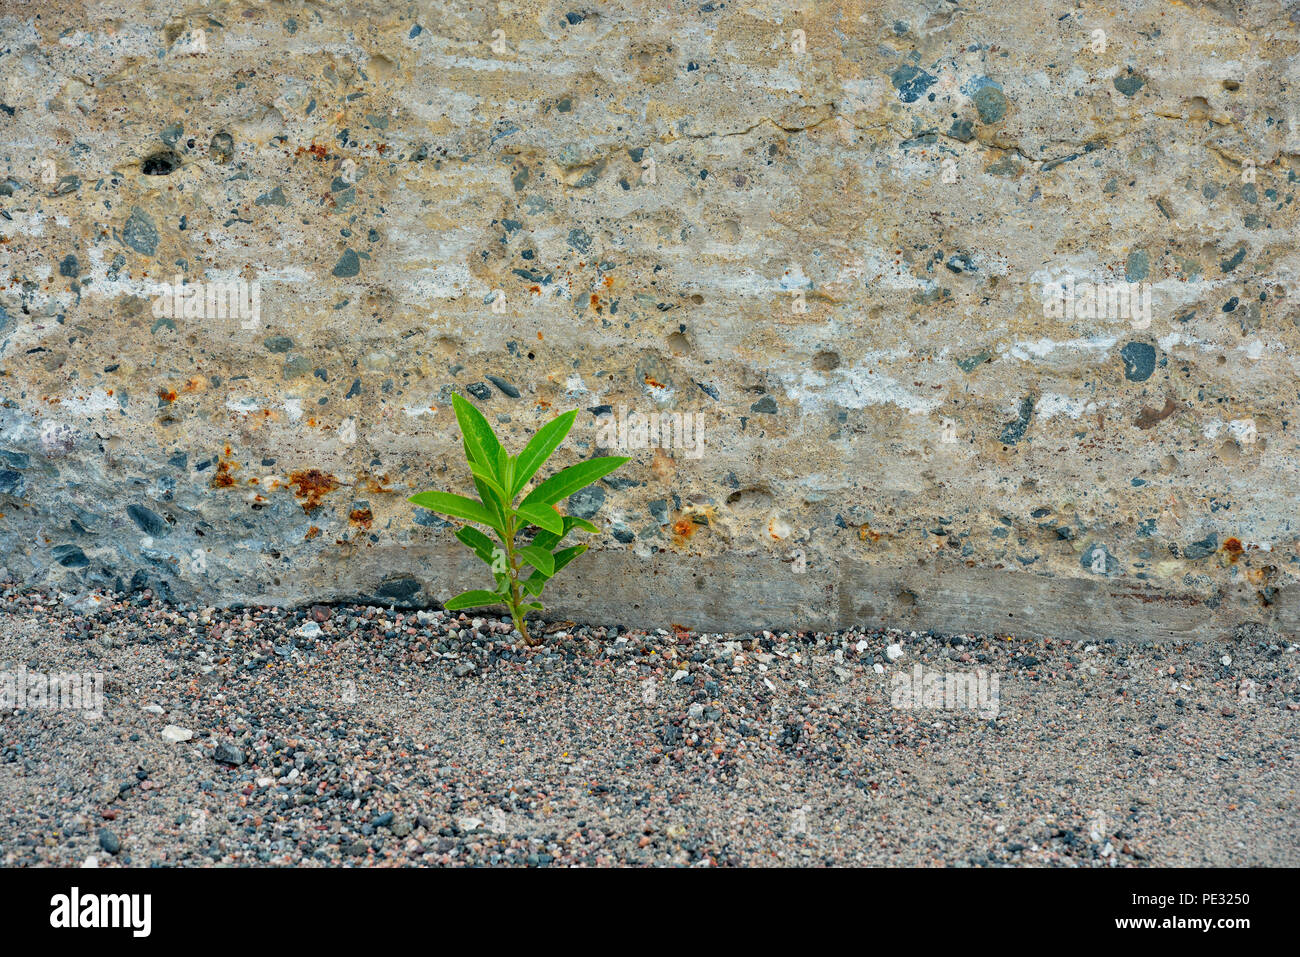 Goldenrod seedling in gravel near concrete curb, Greater Sudbury, Ontario, Canada - Stock Image